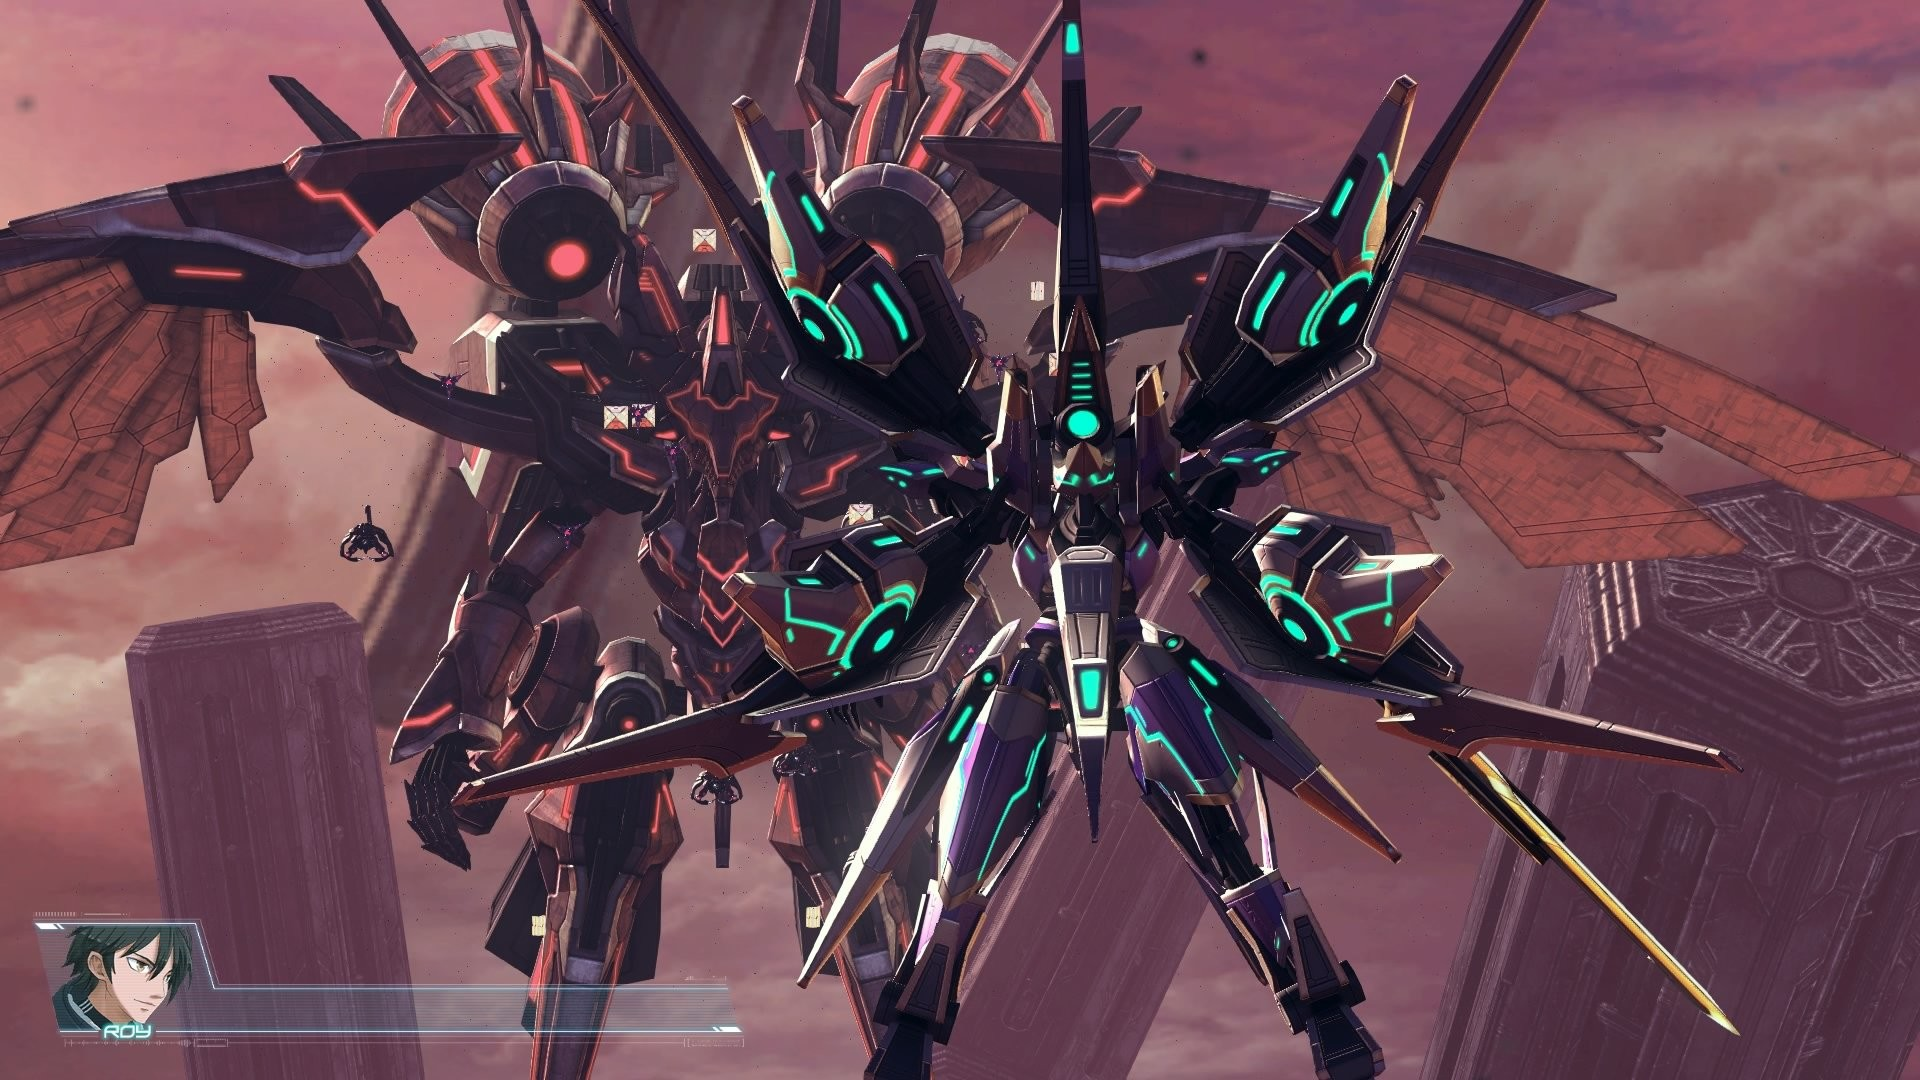 ASTEBREED sci-fi anime shooter fantasy action fighting mecha poster  wallpaper     833272   WallpaperUP